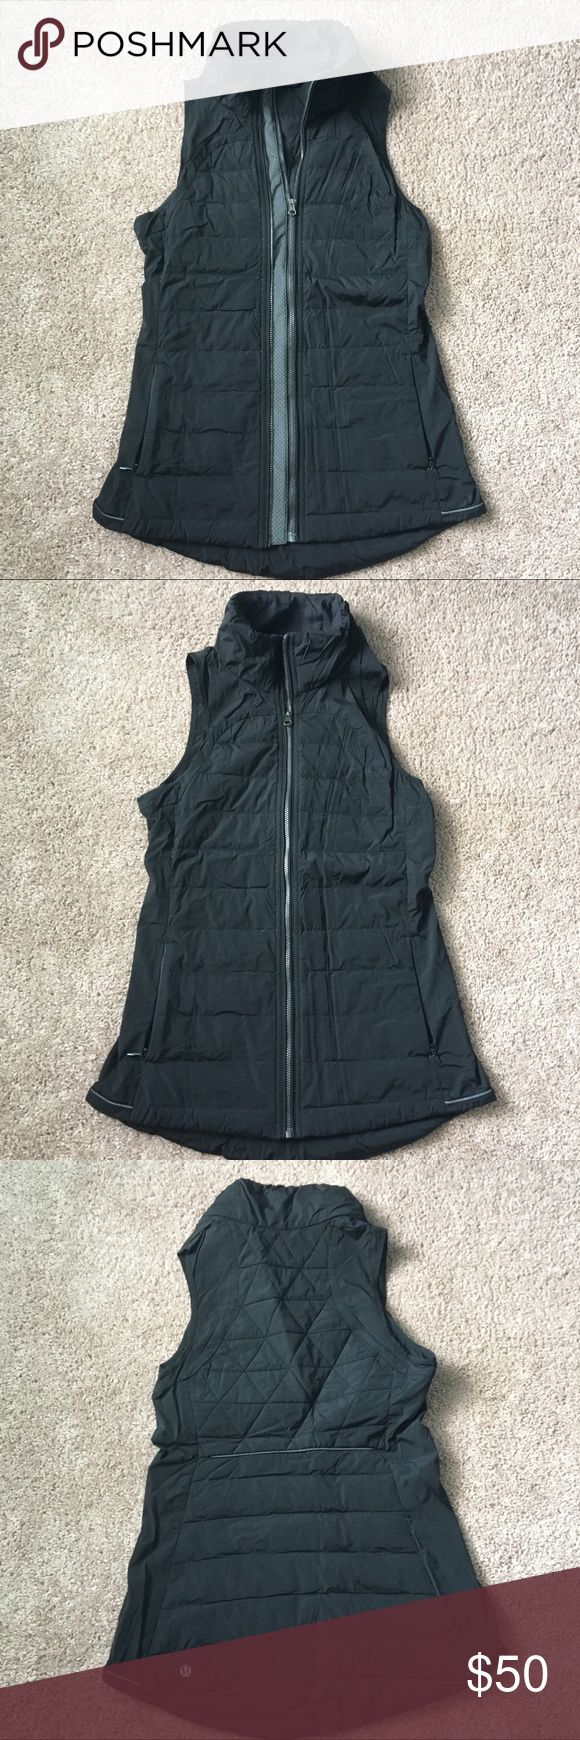 🍋 lululemon vest Great condition vest perfect for layering as fall rolls in or out on a chilly run! Reflective details both in front and back will allow you to remain visible as daylight shortens! This jacket has the option to zip in the front TWO way for the perfect fit. Please no trade requests. lululemon athletica Jackets & Coats Vests